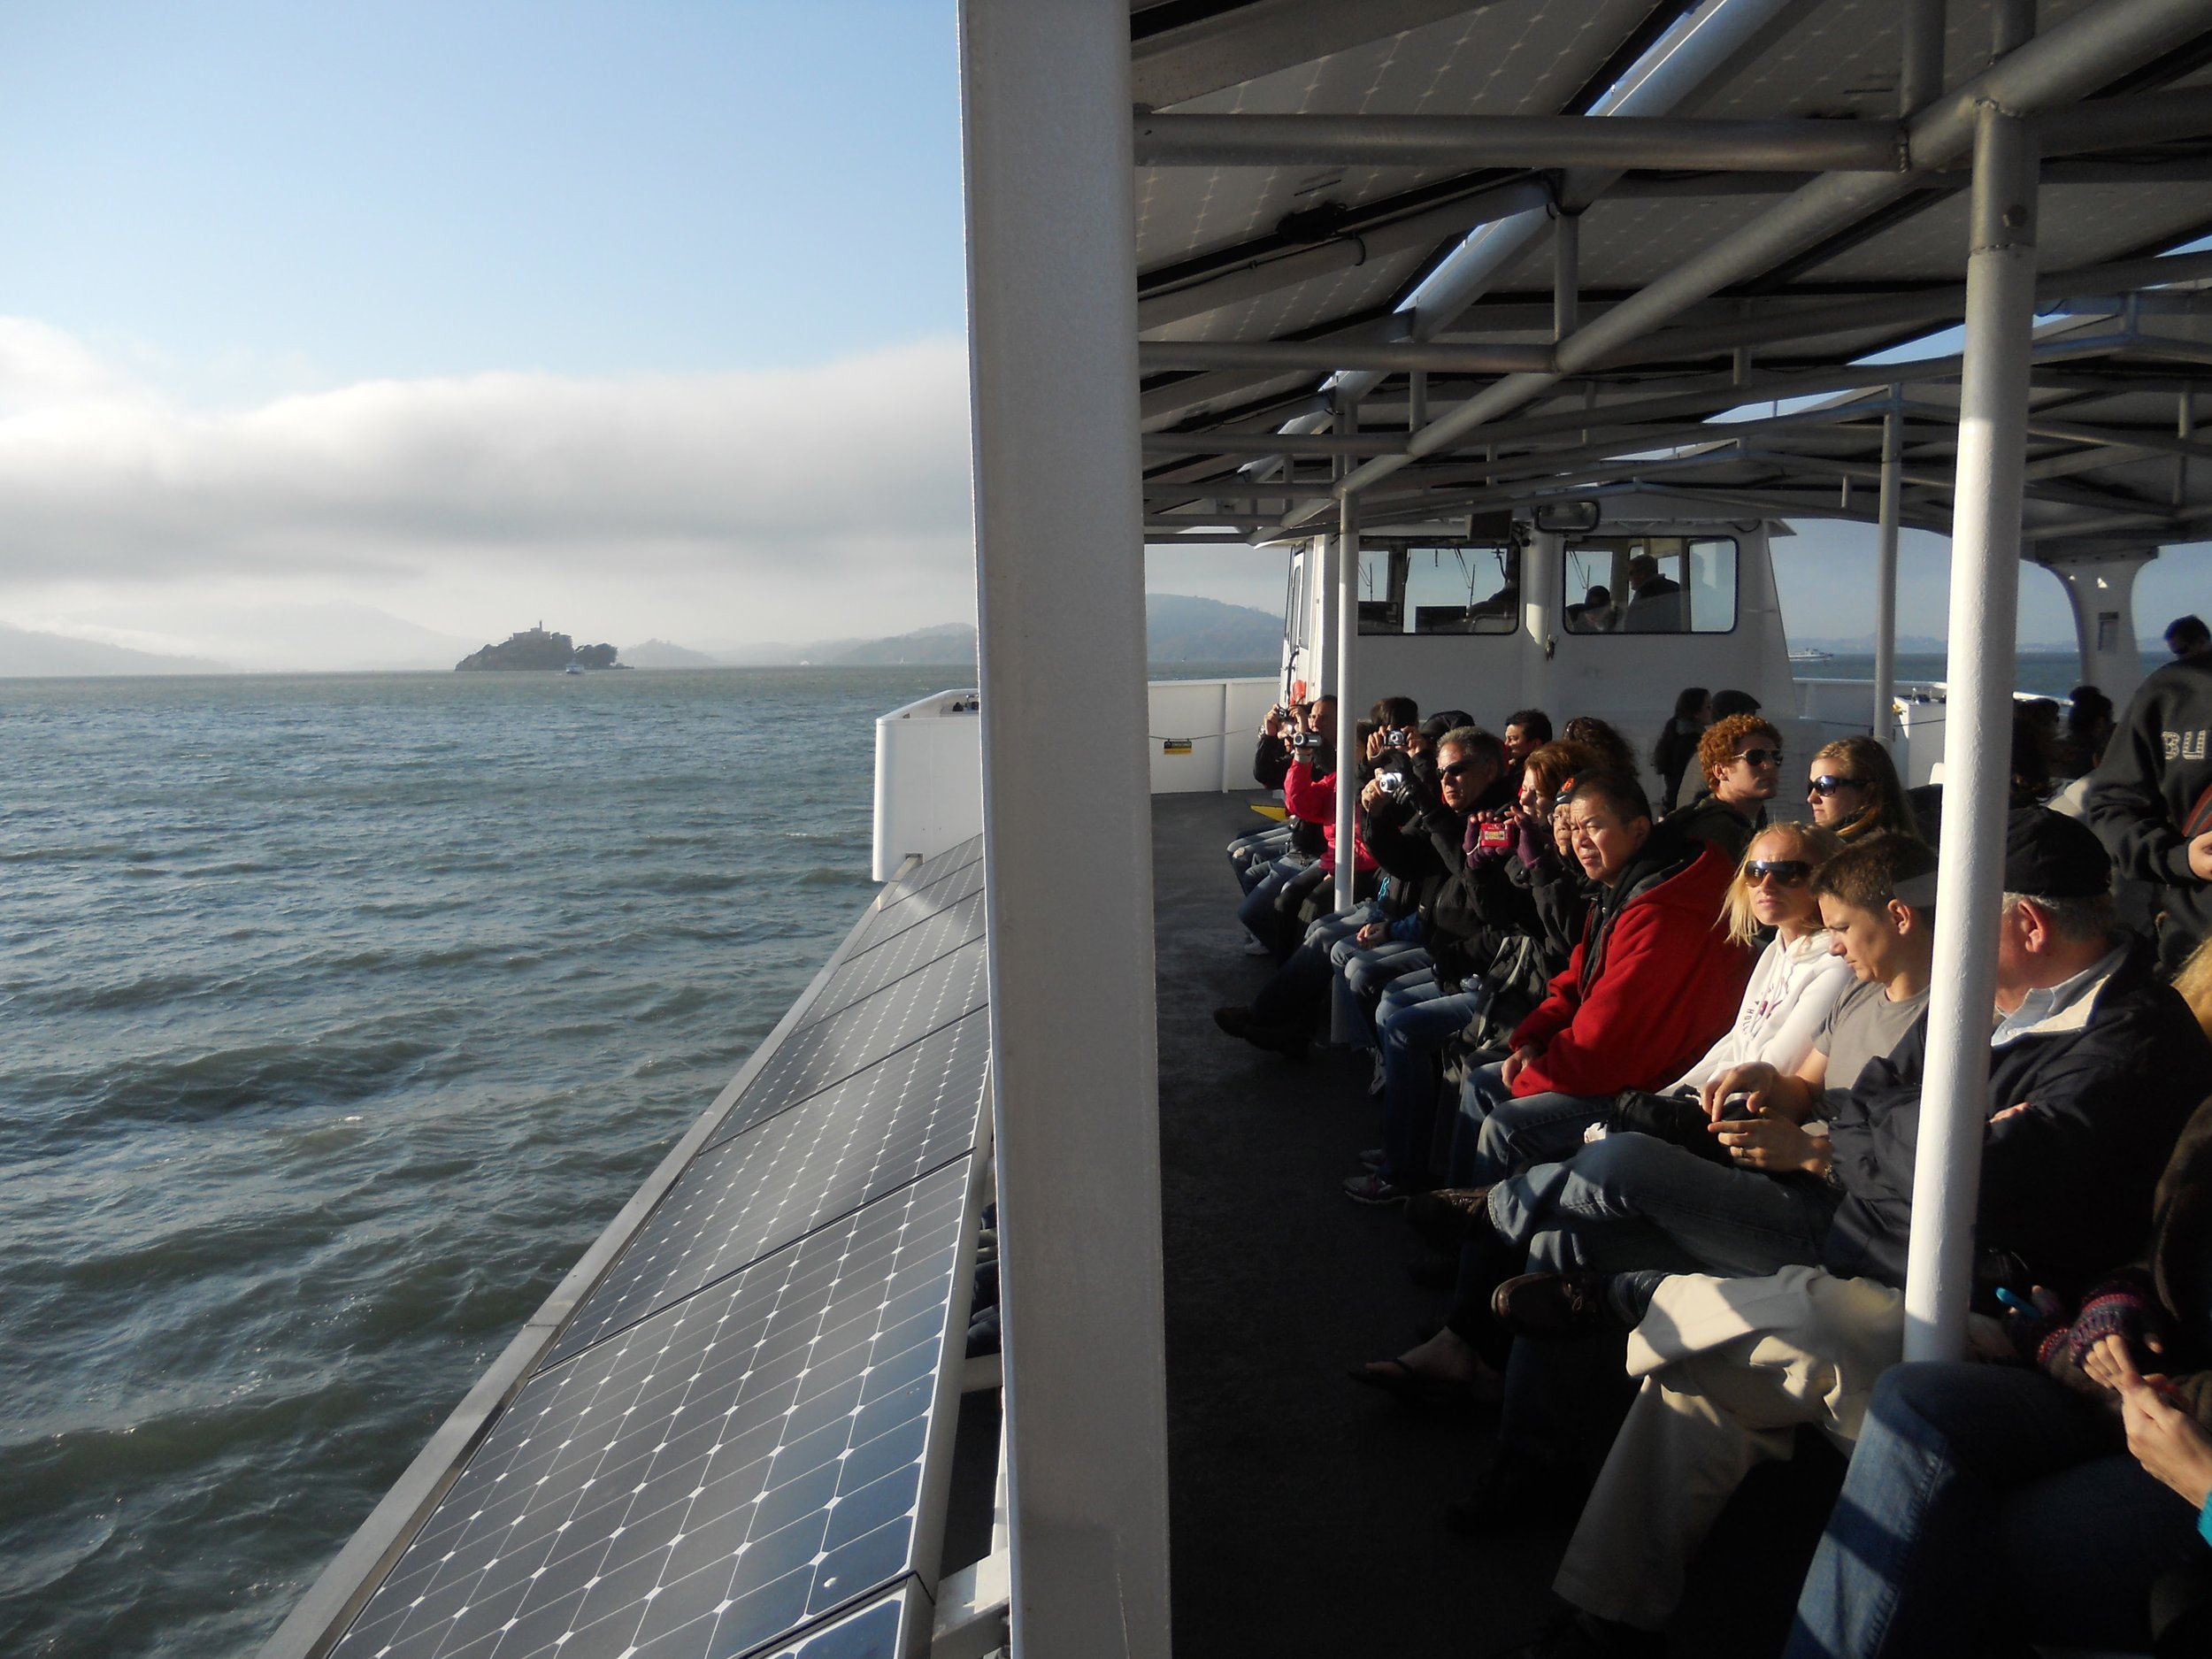 The transit time from Pier 33 to Alcatraz is approximately 20 minutes